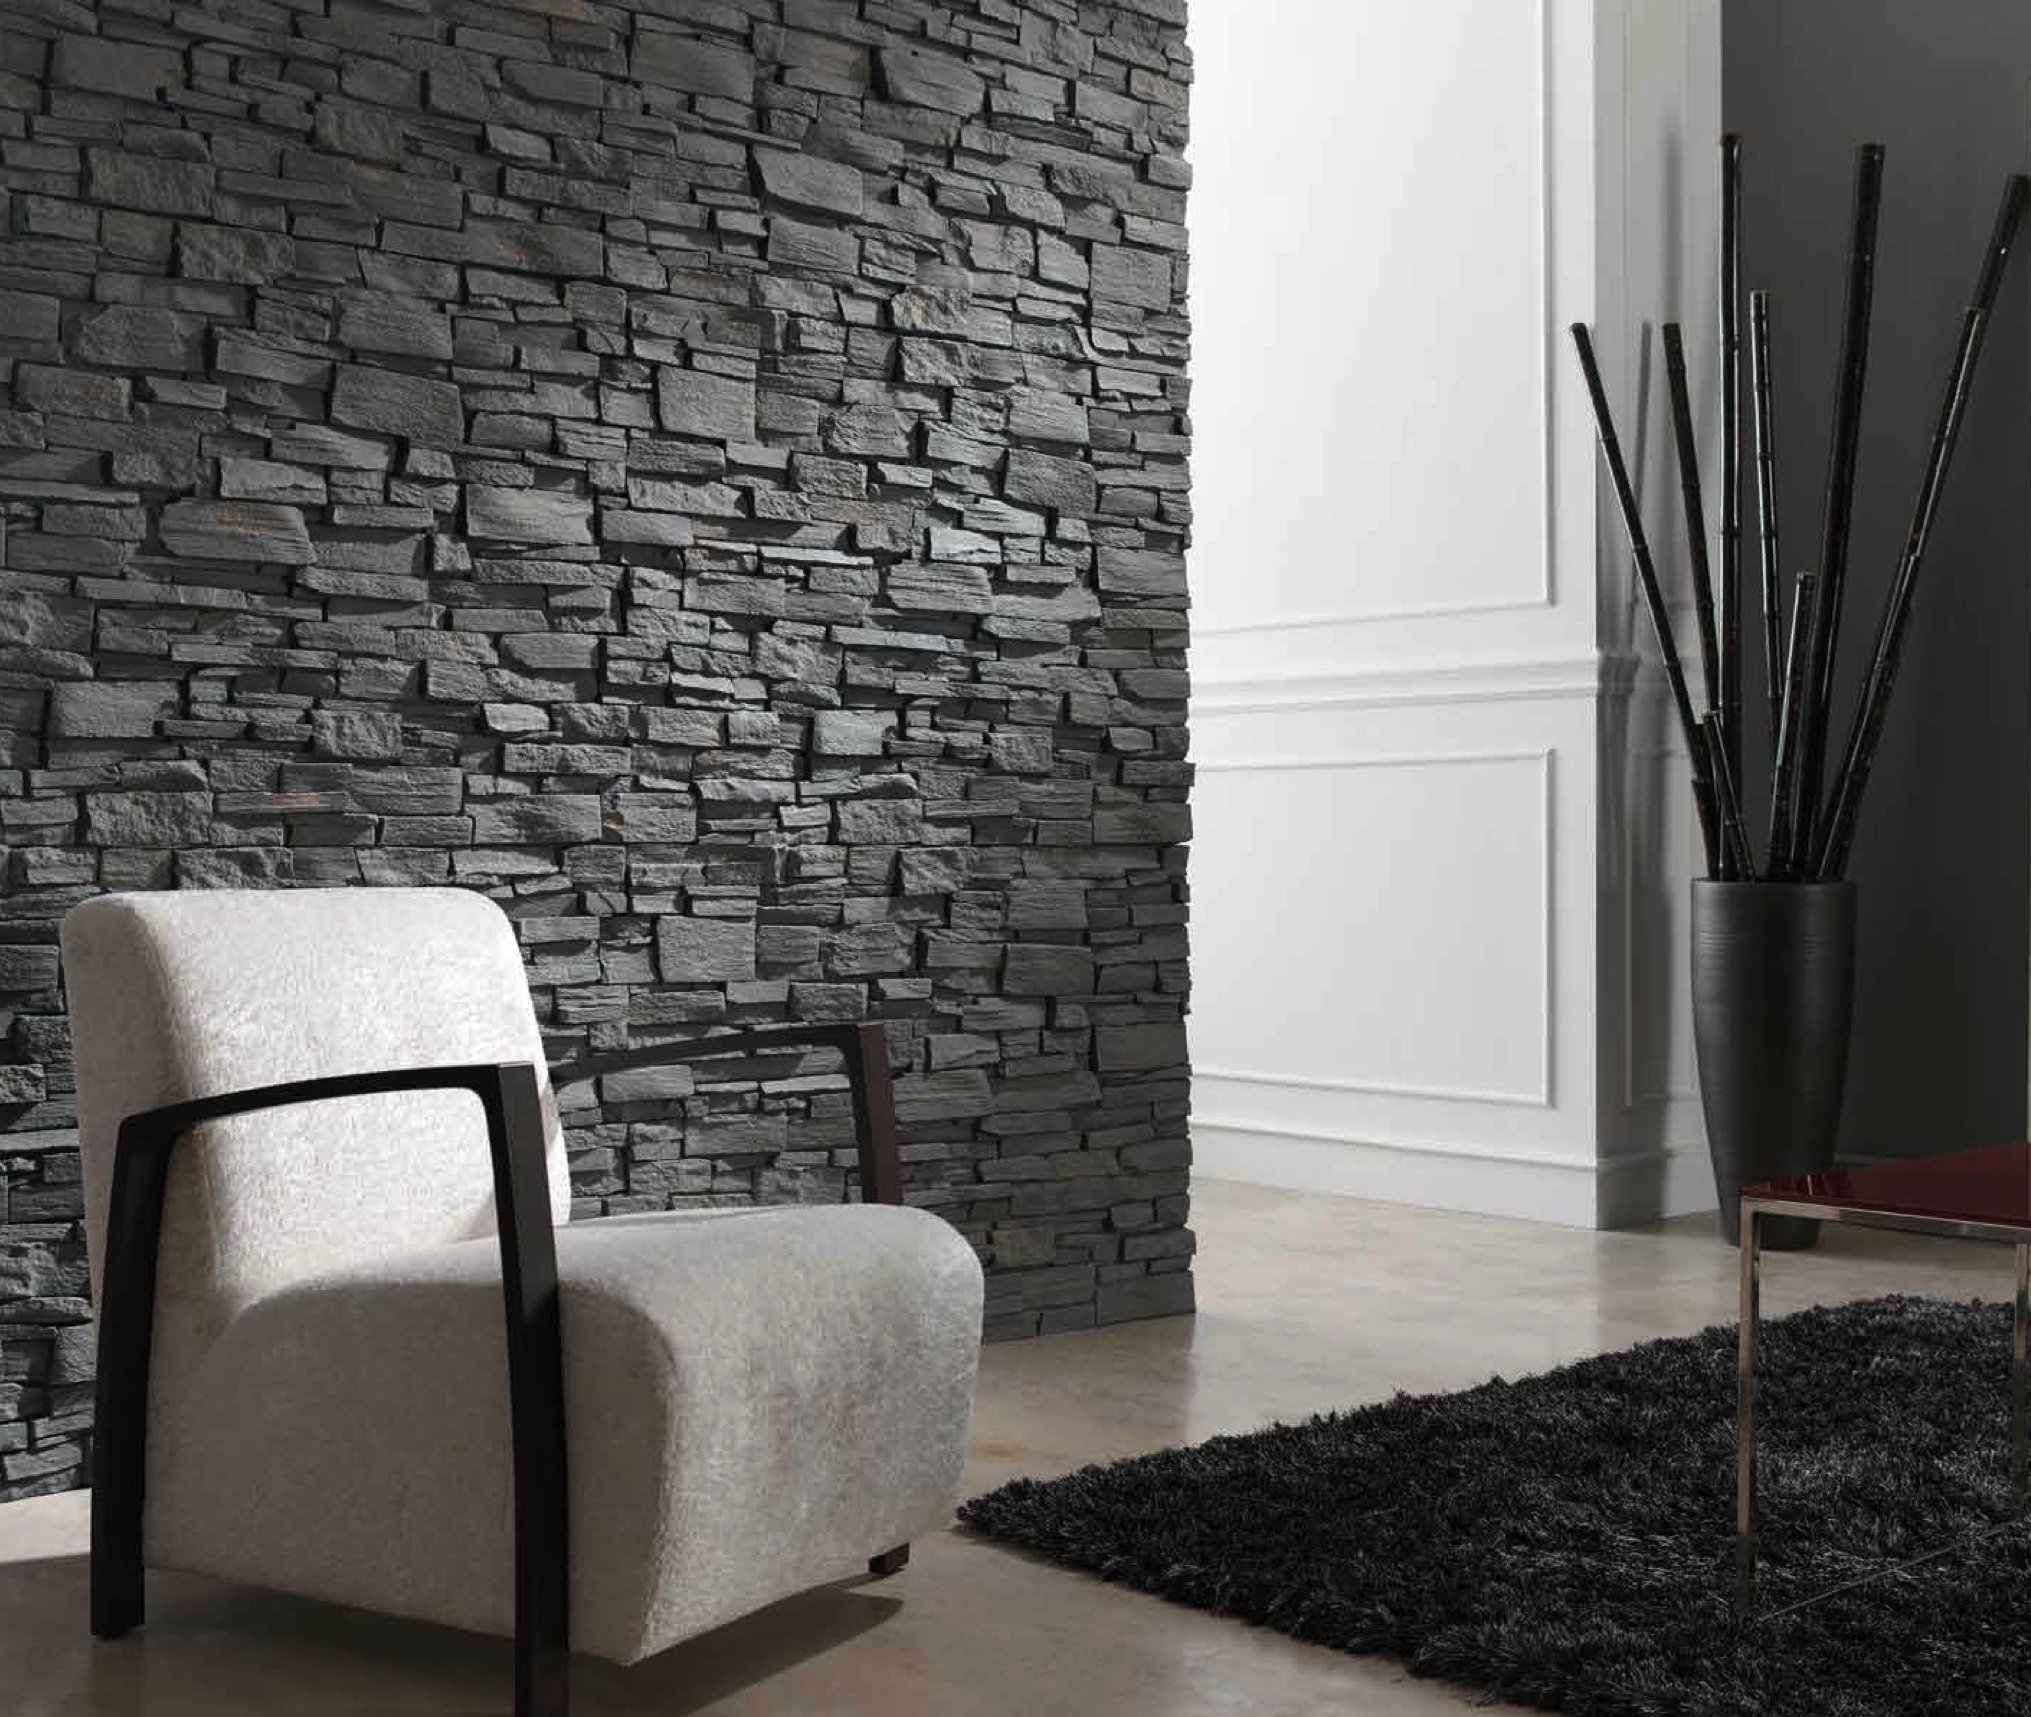 Where To Buy Fake Stone Dreamwall Wallcoverings With A Difference